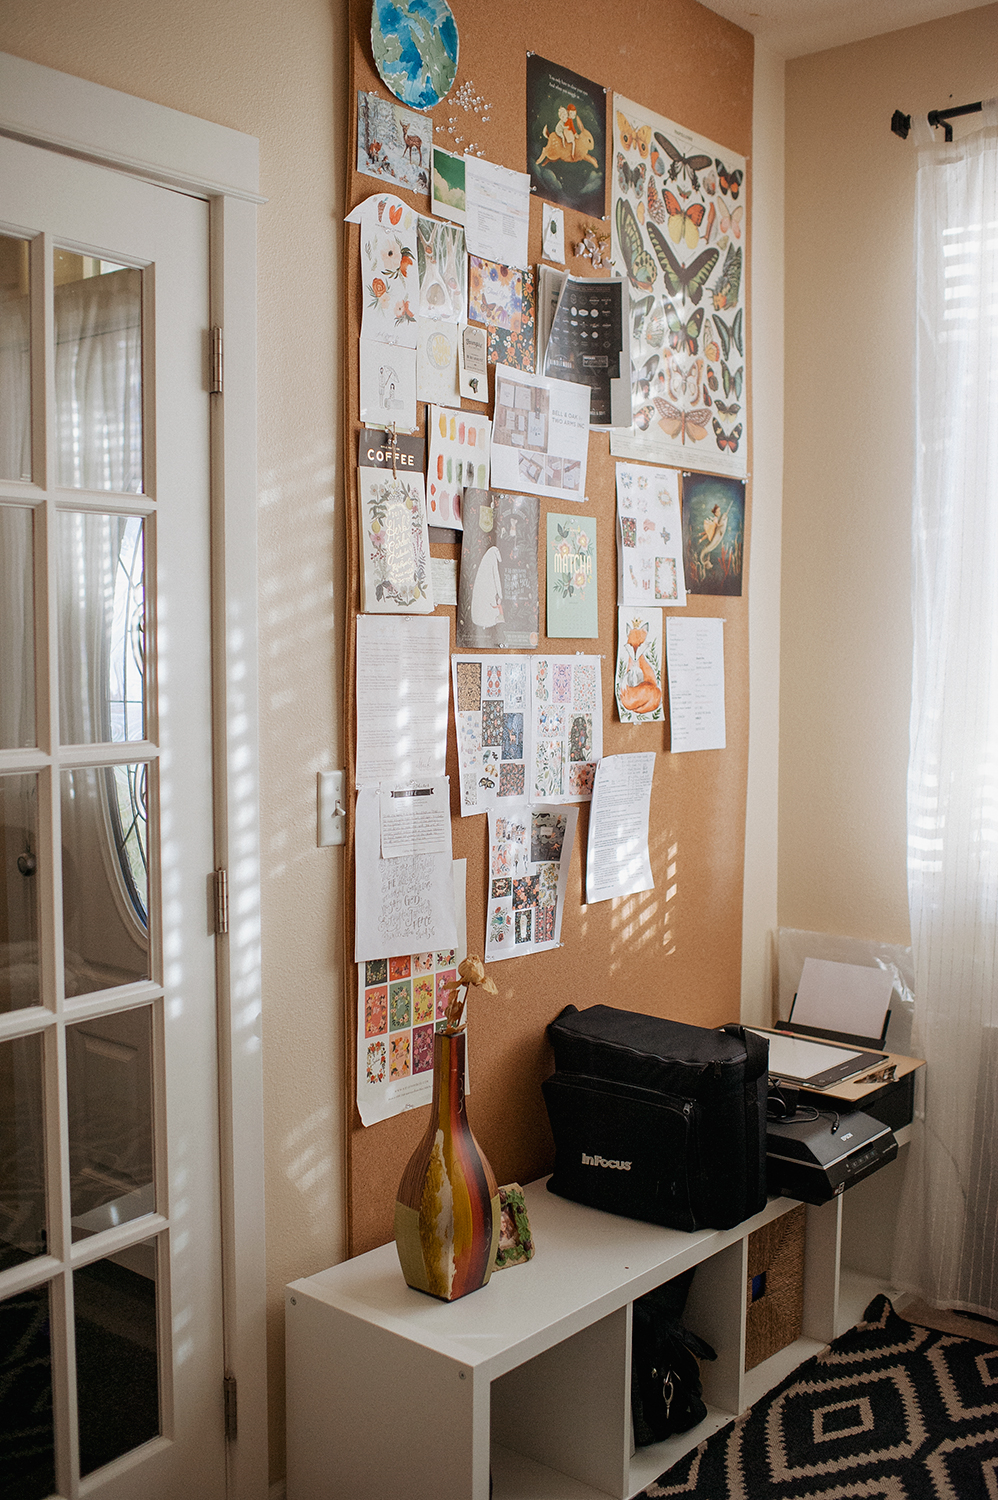 Hairy How To Install Your Own Cork Board Wall Area How To Install Your Own Cork Board Wall Area Elena Wilken Cork Board Wall Panel Cork Board Wall Target baby Cork Board Wall